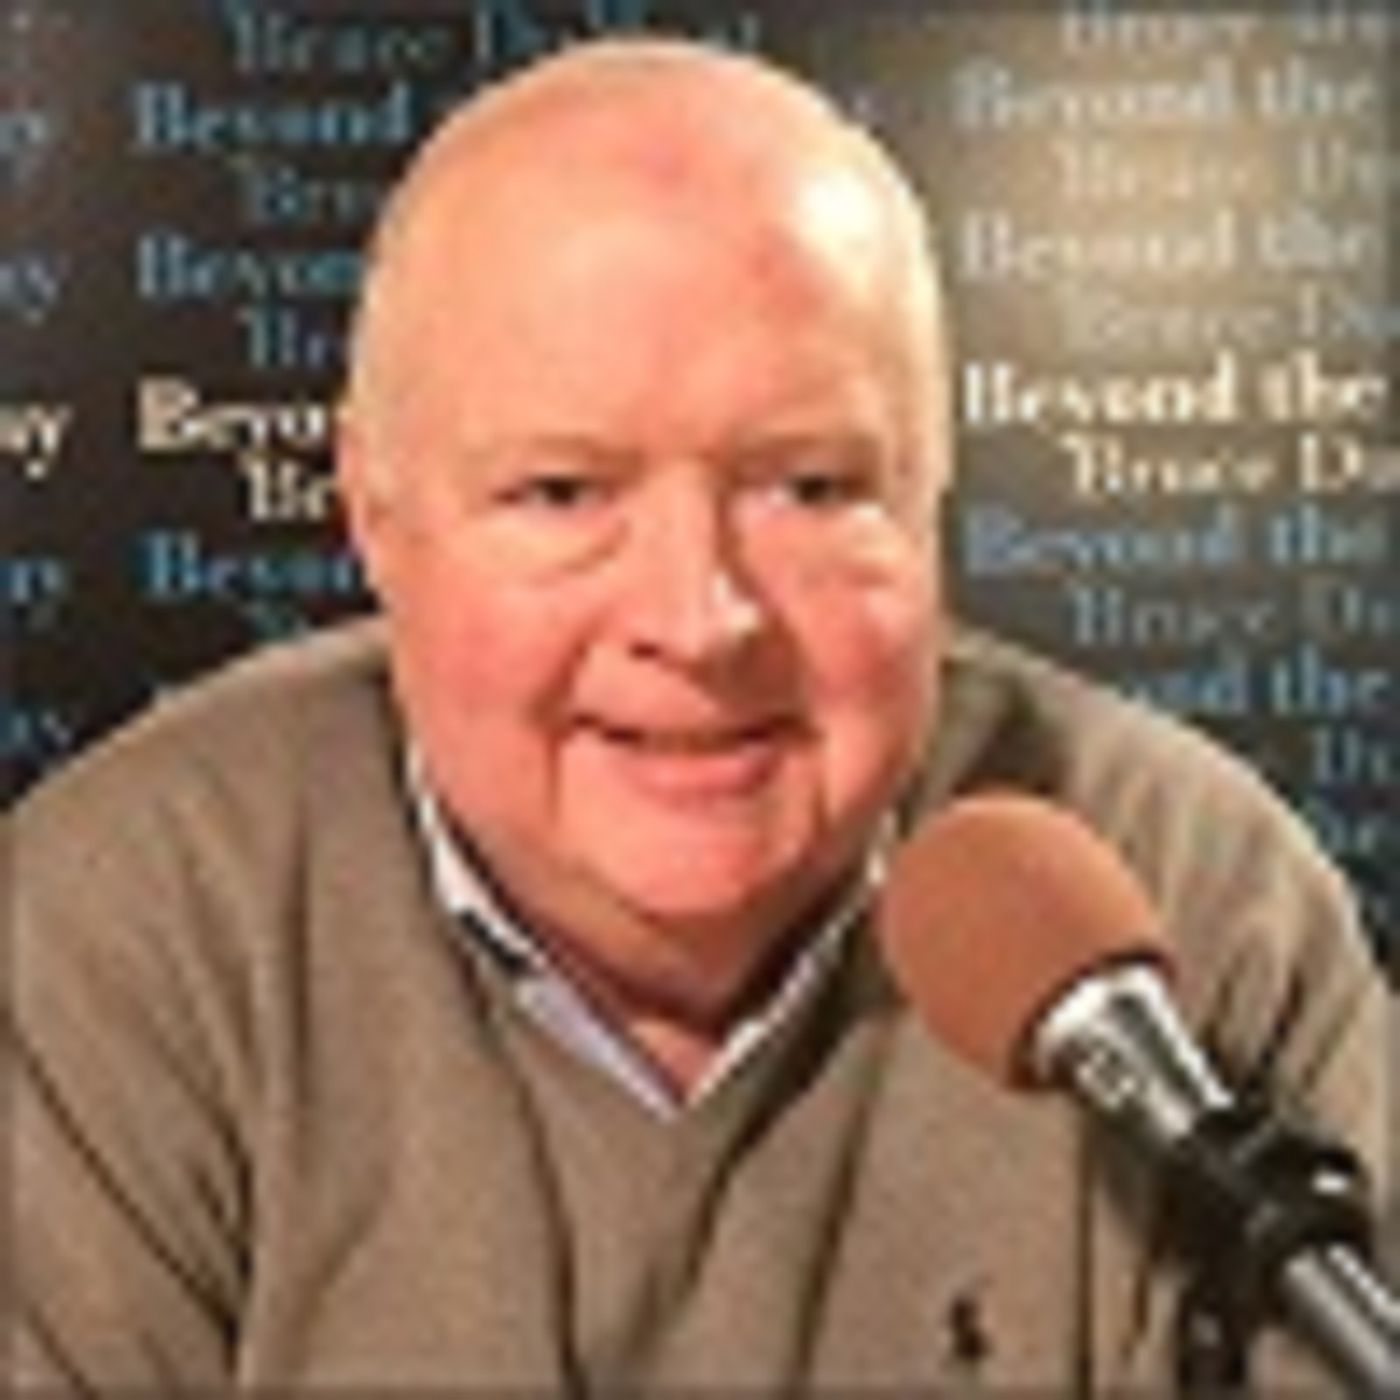 Heartland Newsfeed Radio Network: Beyond The Beltway with Bruce DuMont (July 14, 2019)